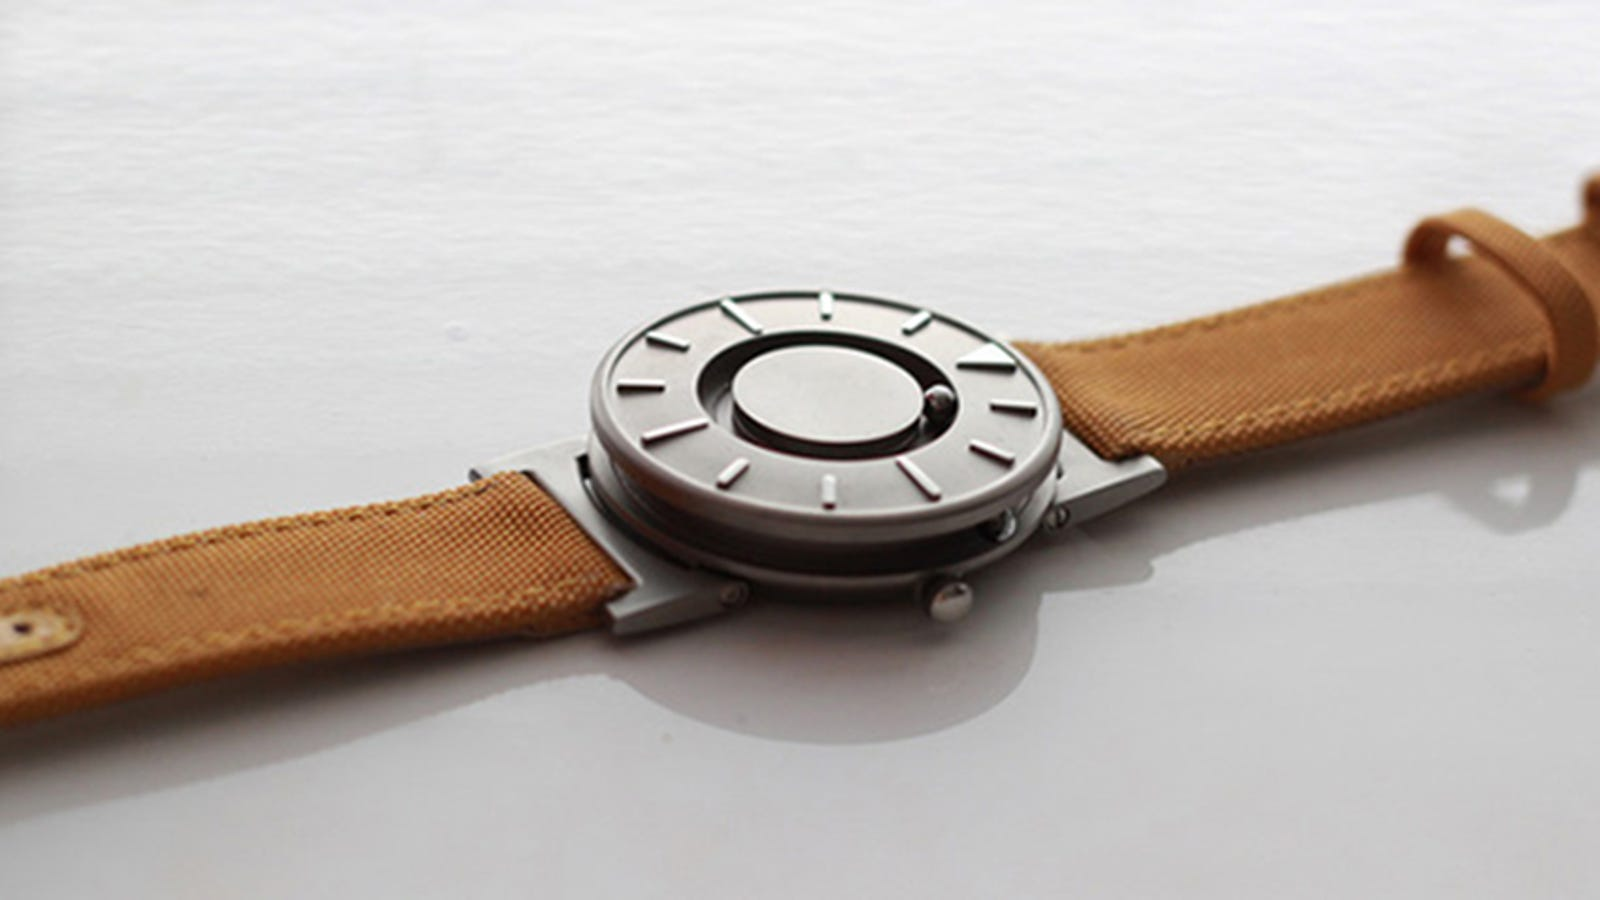 wrist easily pforzheim indexes visiting blinds watches can by for pocket stowa quite produced profile fingers time and hands two post rg j big part have people be so blind schauer read